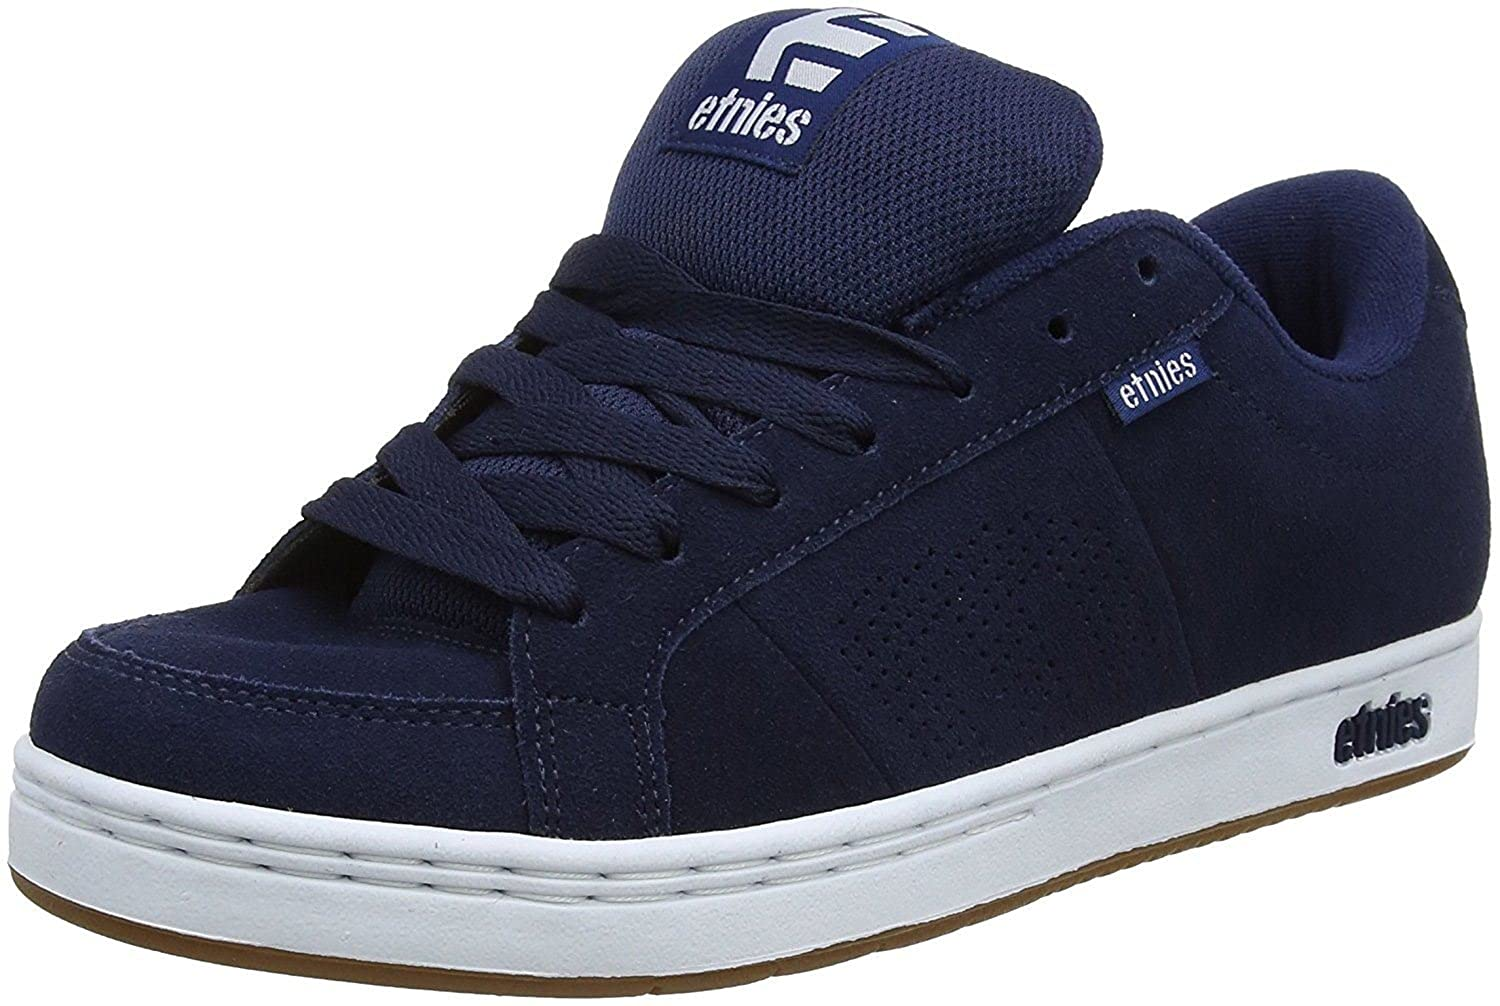 #etnies Kingpin Navy Gum White Mens Suede Trainers Shoes